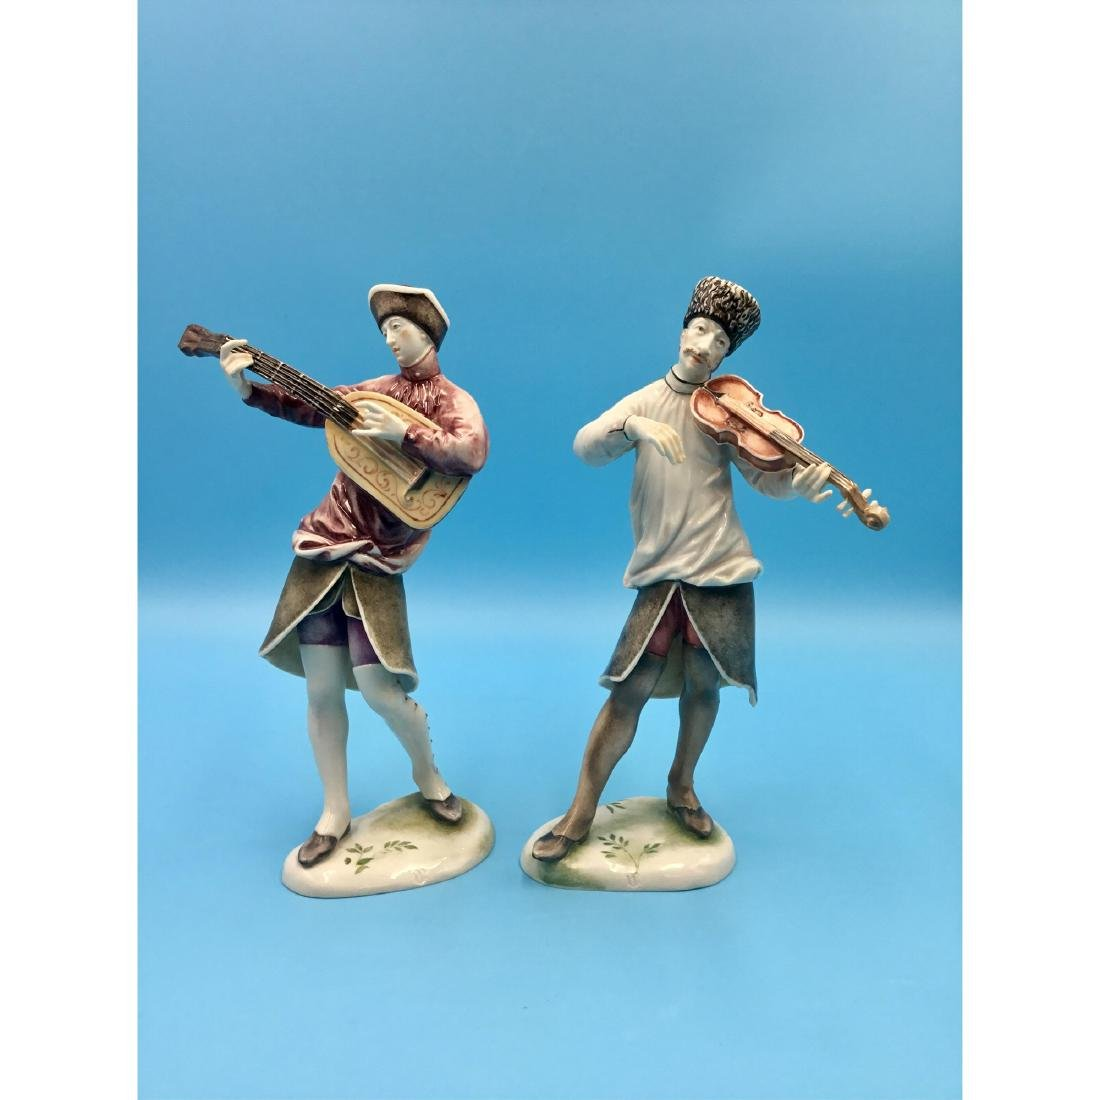 NYMPHENBURG GERMAN PORCELAIN MUSICIANS FIGURINES